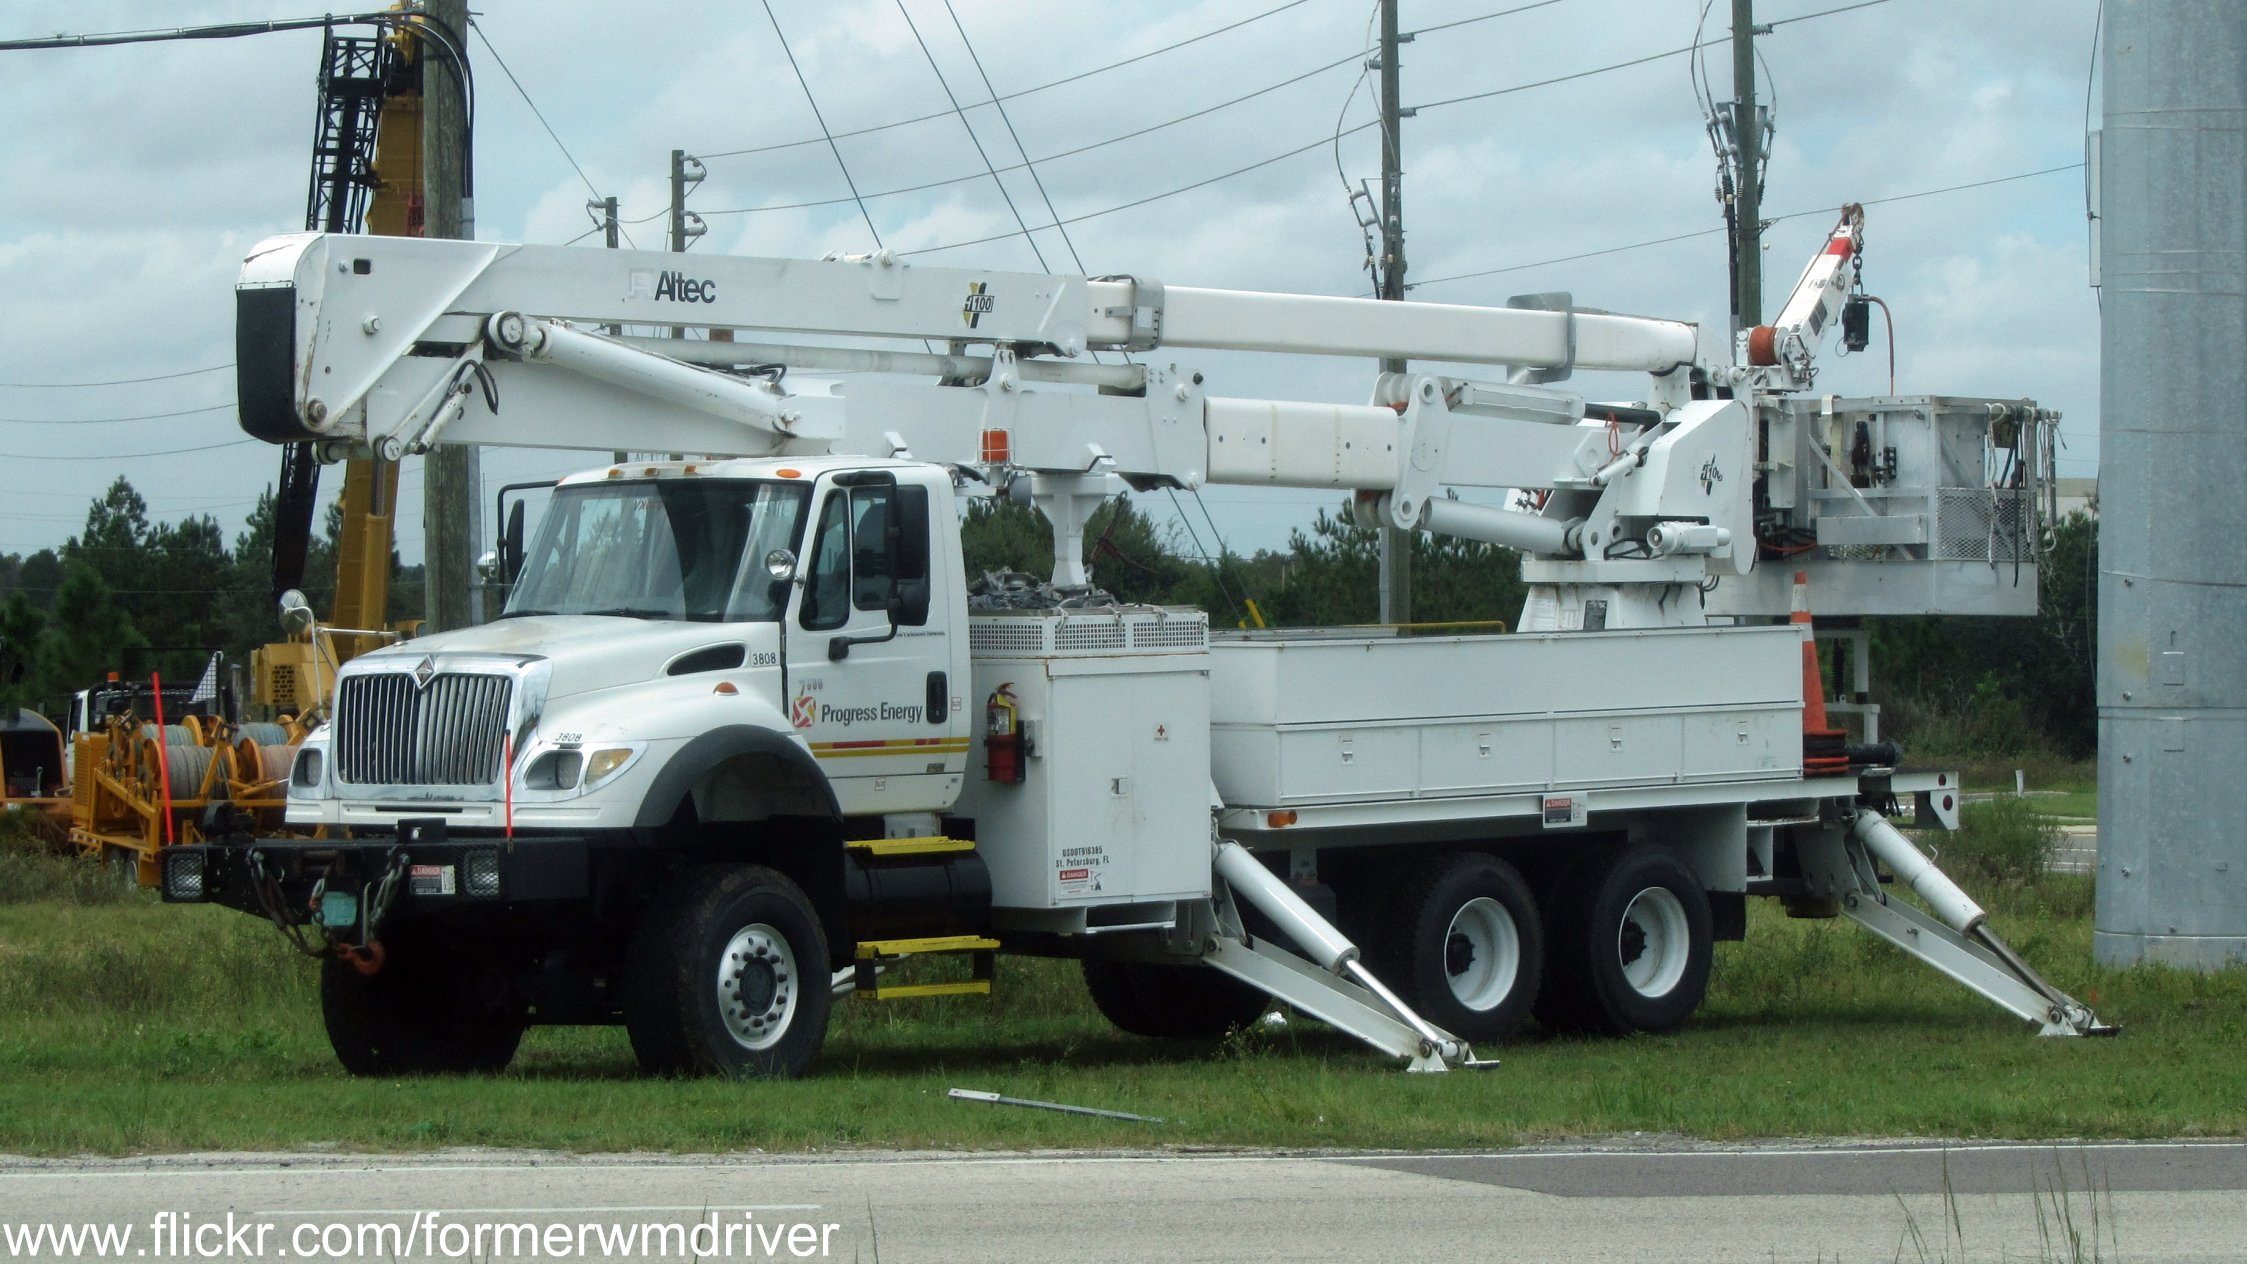 M40 Altec Bucket Truck Wiring Diagram Trusted Diagrams Hydraulic Lift For Trucks Used Parts